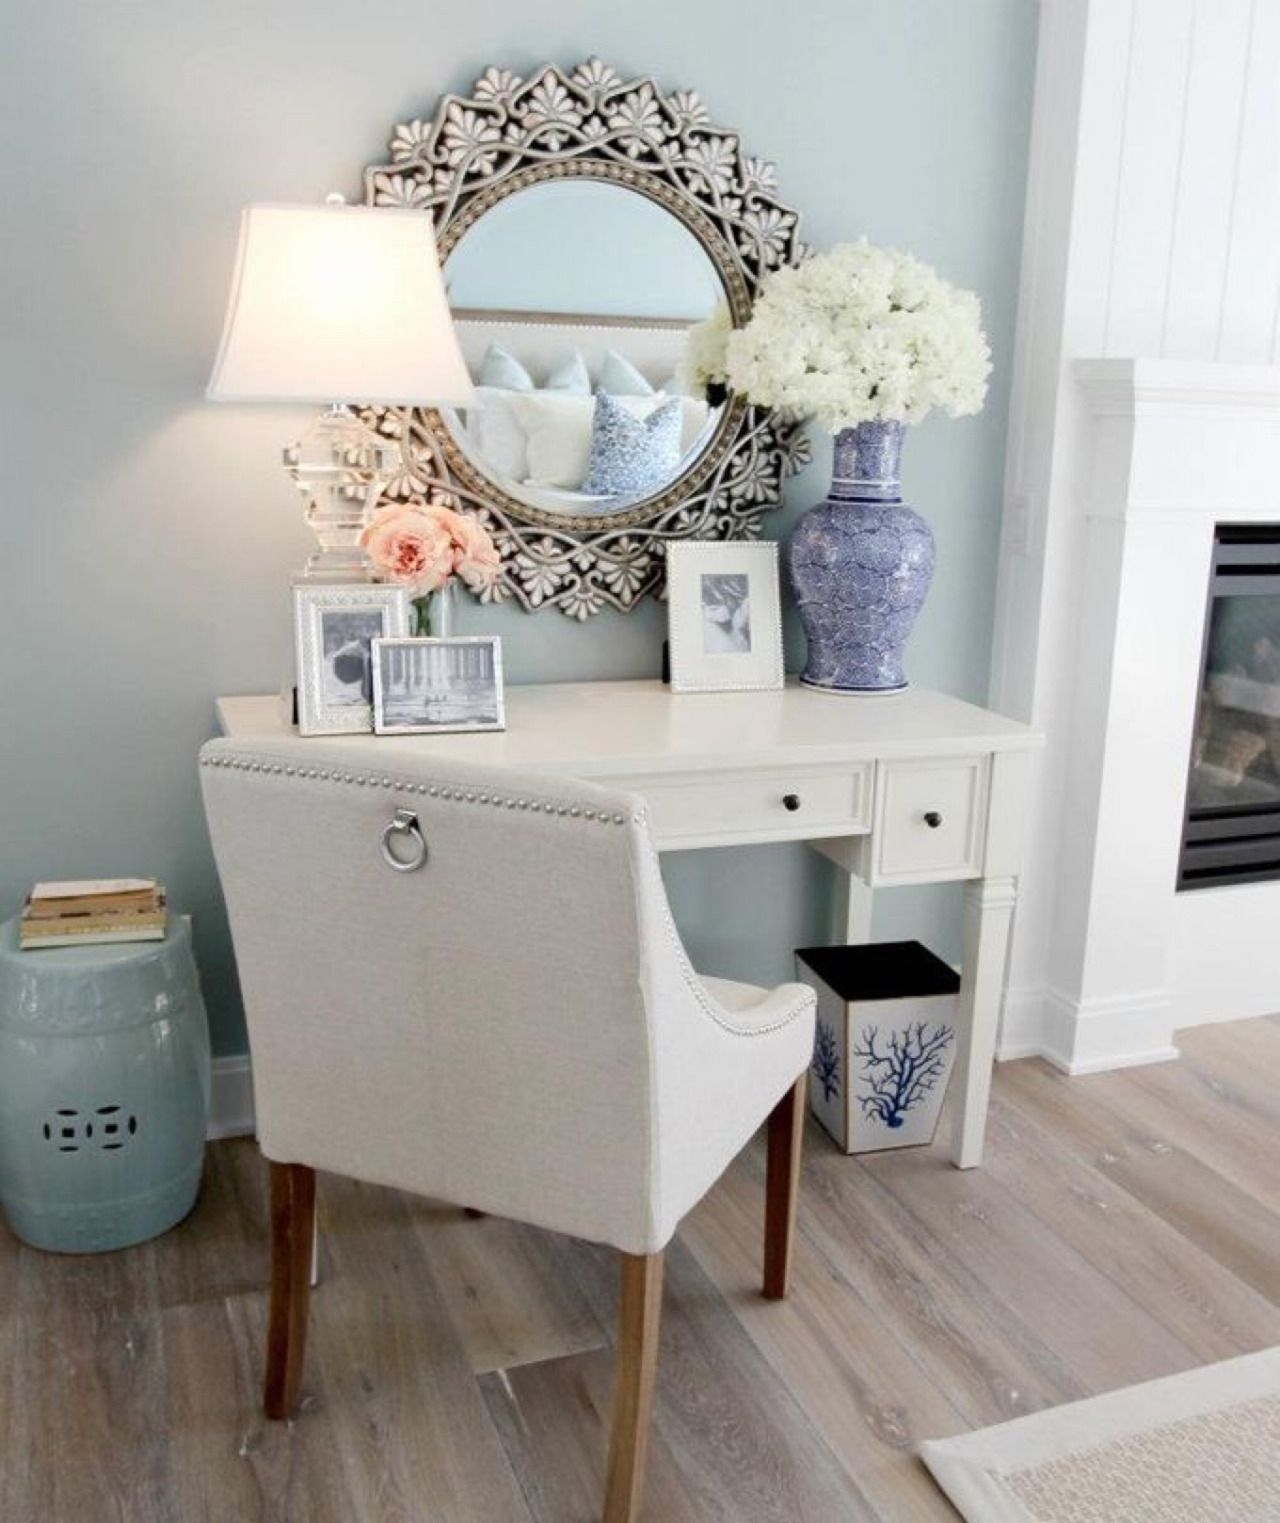 Beau Vanity Table Without Mirror